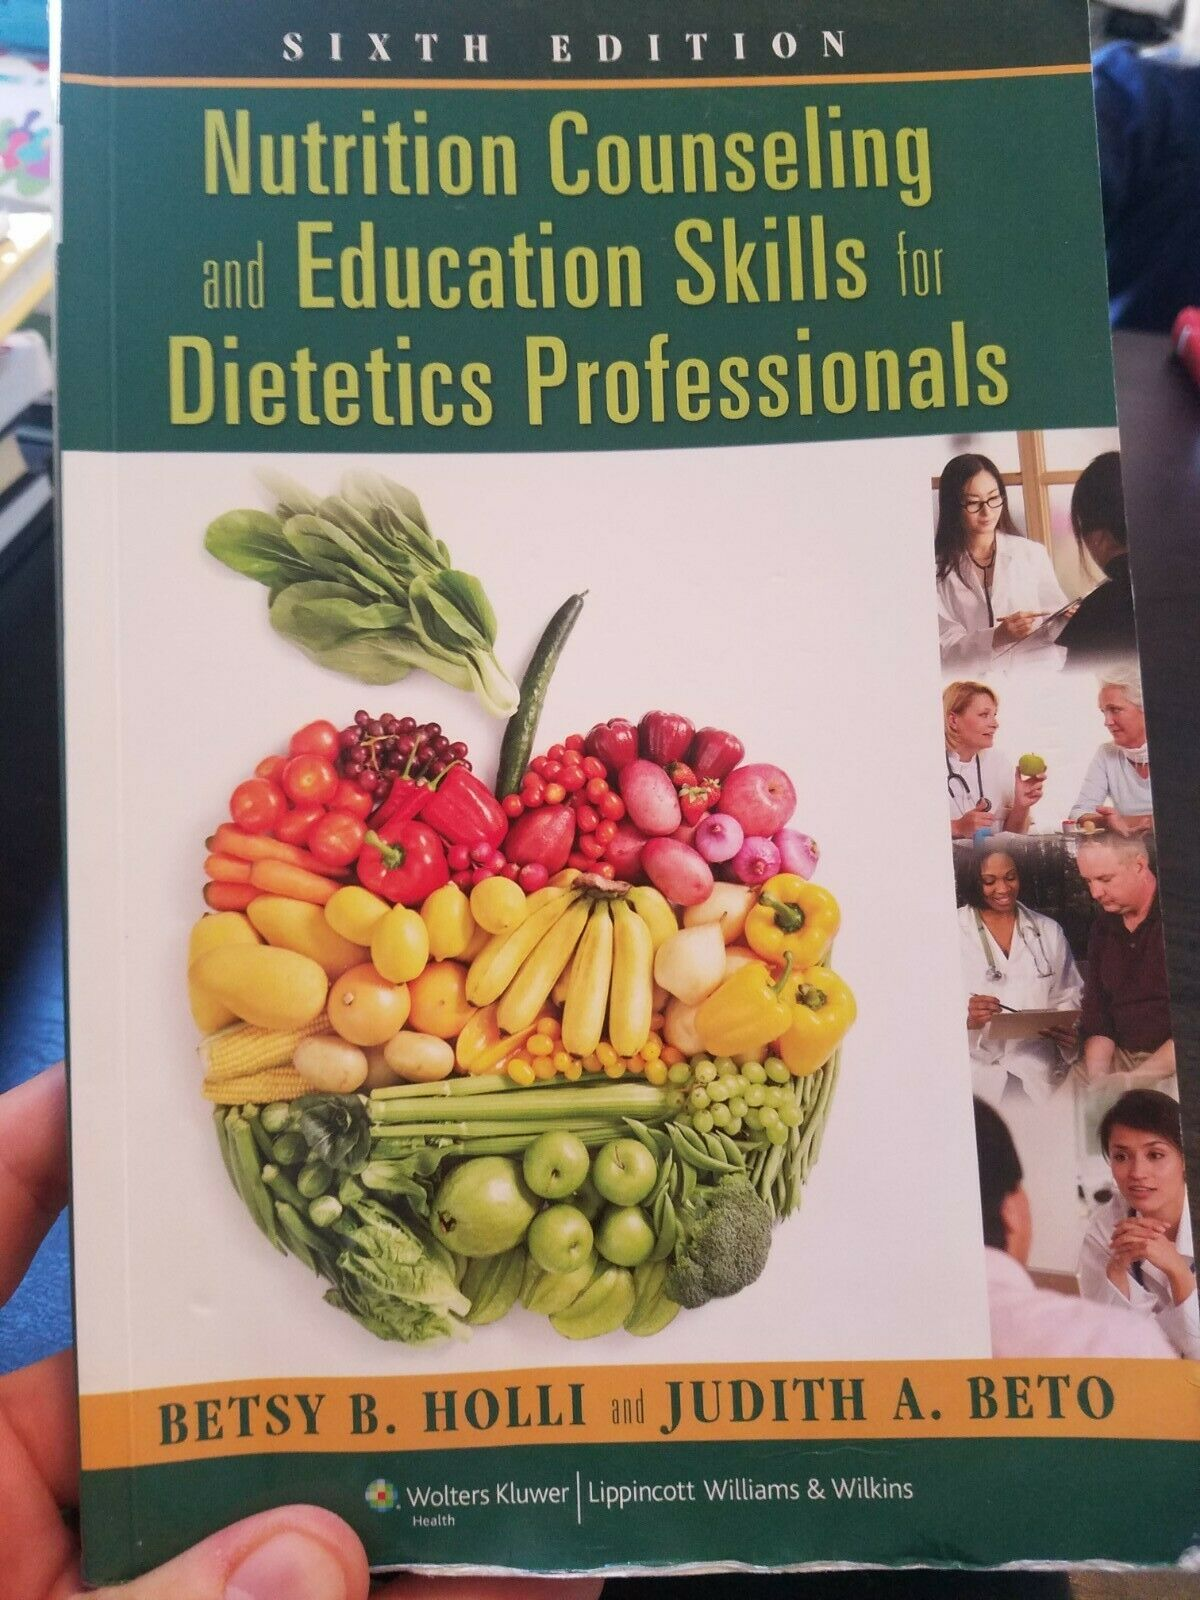 Nutrition Counseling and Education Skills for Dietetics Professionals by Judith